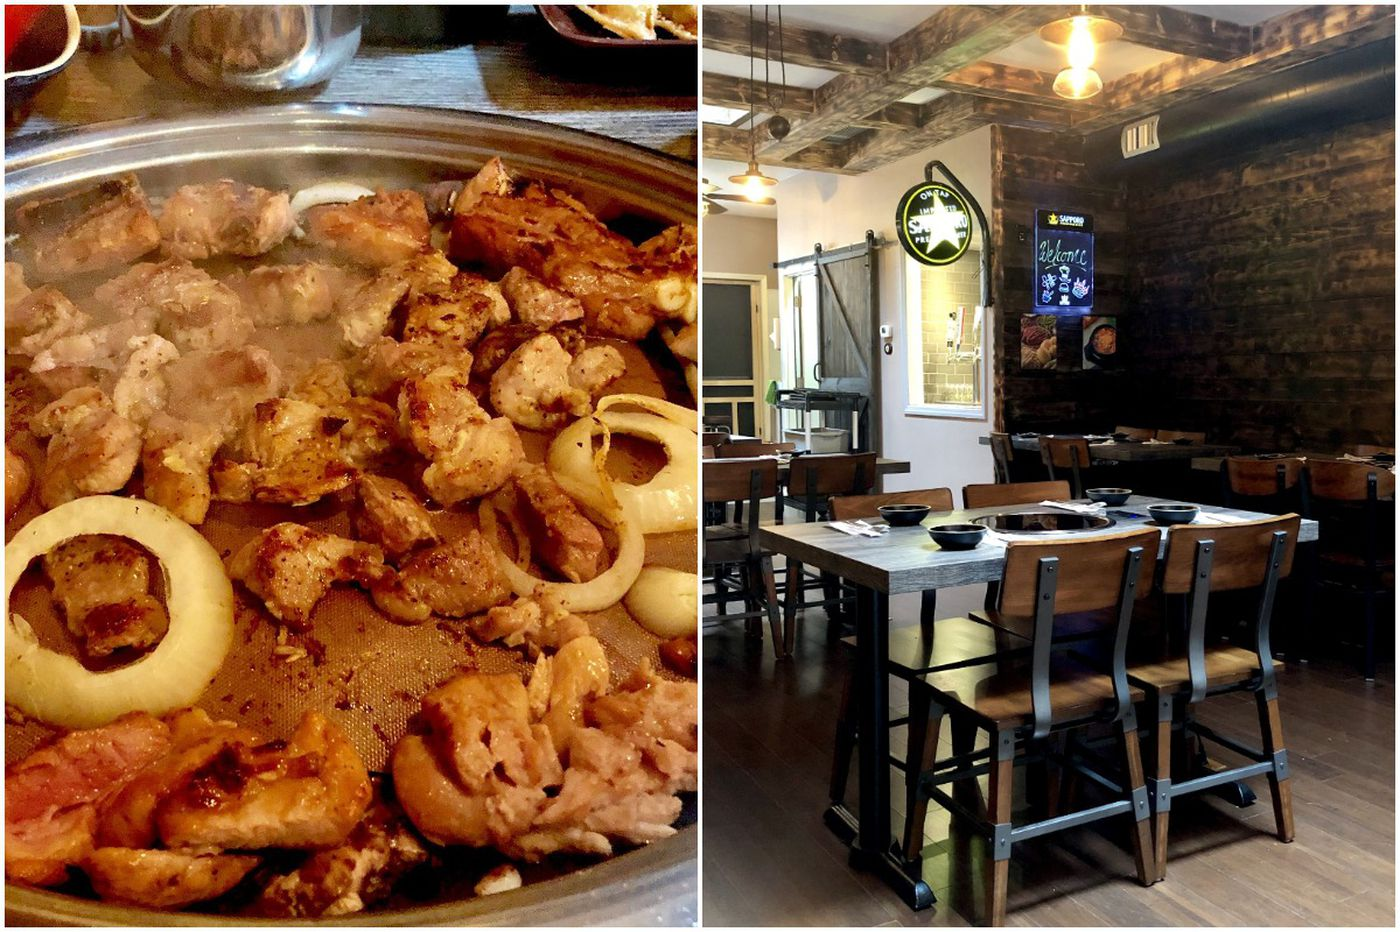 With Songsan, tabletop barbecue comes to Ardmore